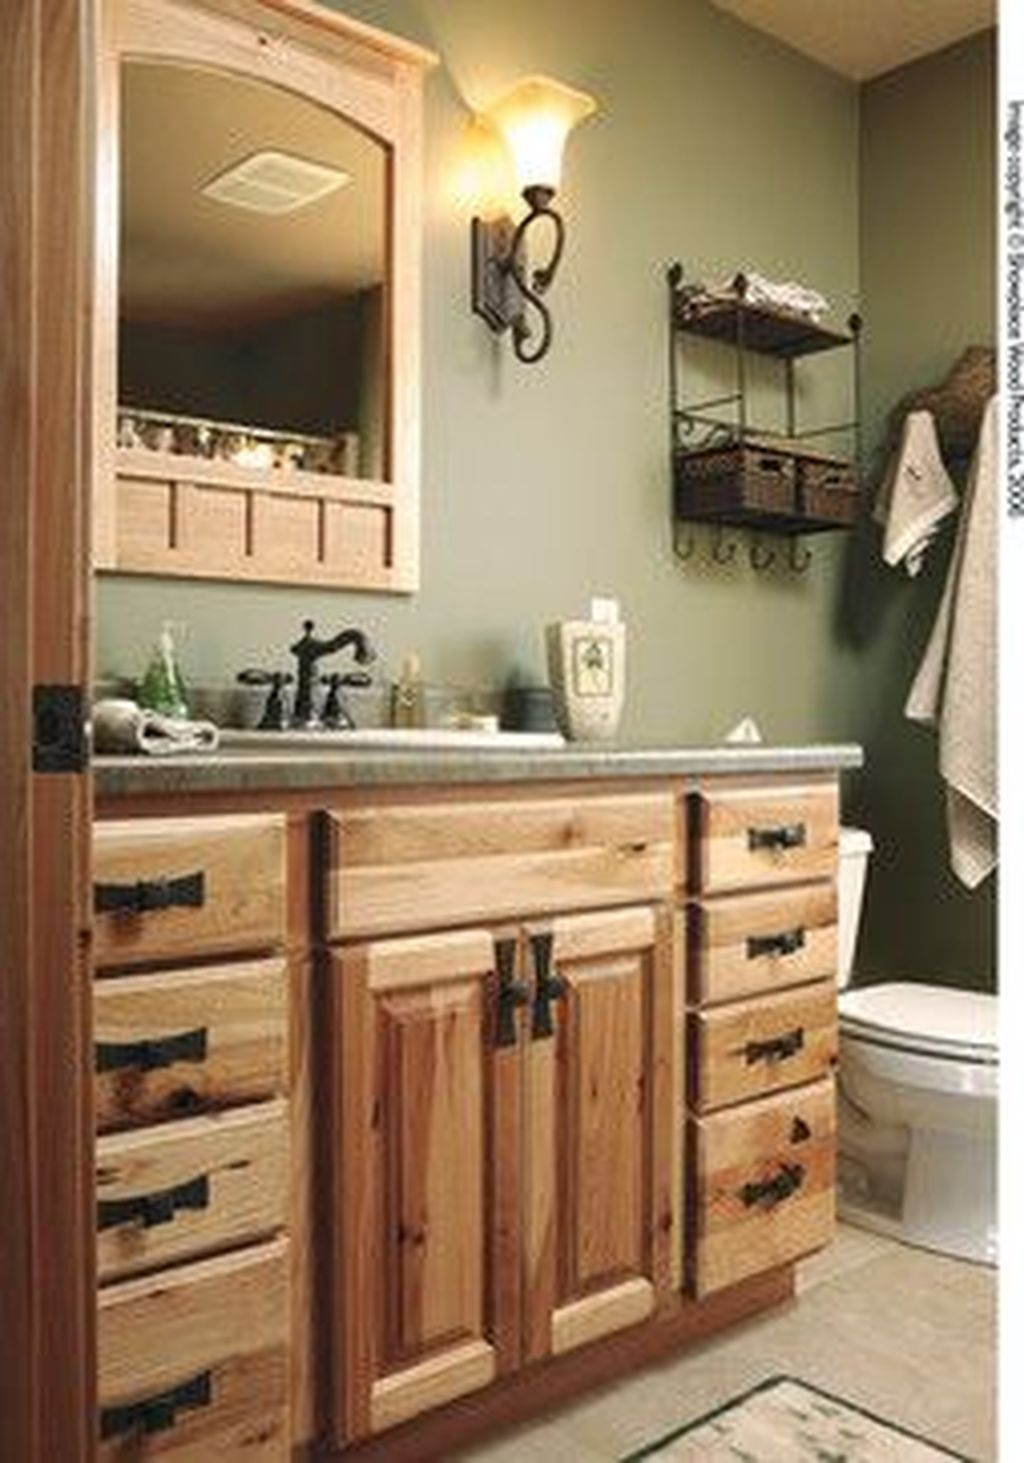 Fabulous Bathroom Cabinets Design Ideas 30 Copy